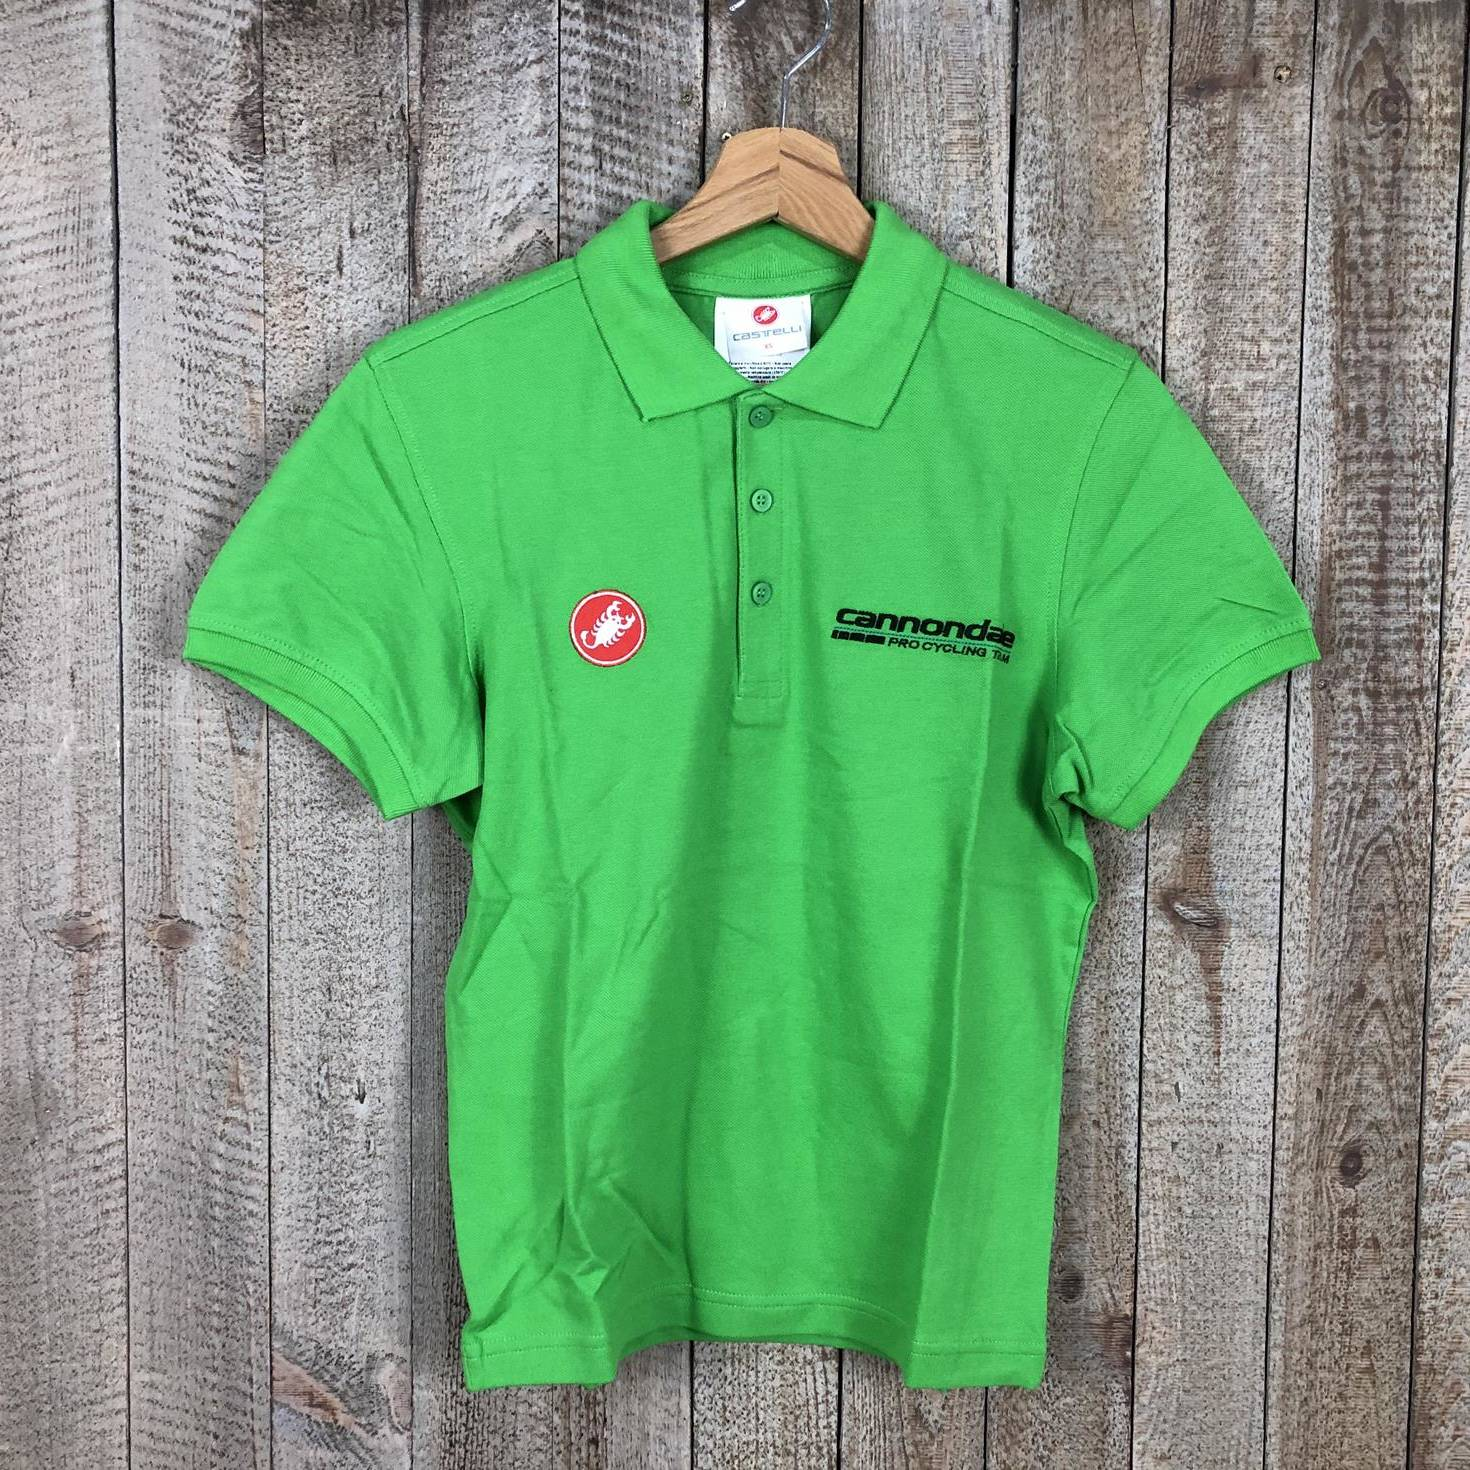 Polo Shirt - Cannondale 00003125 (1)